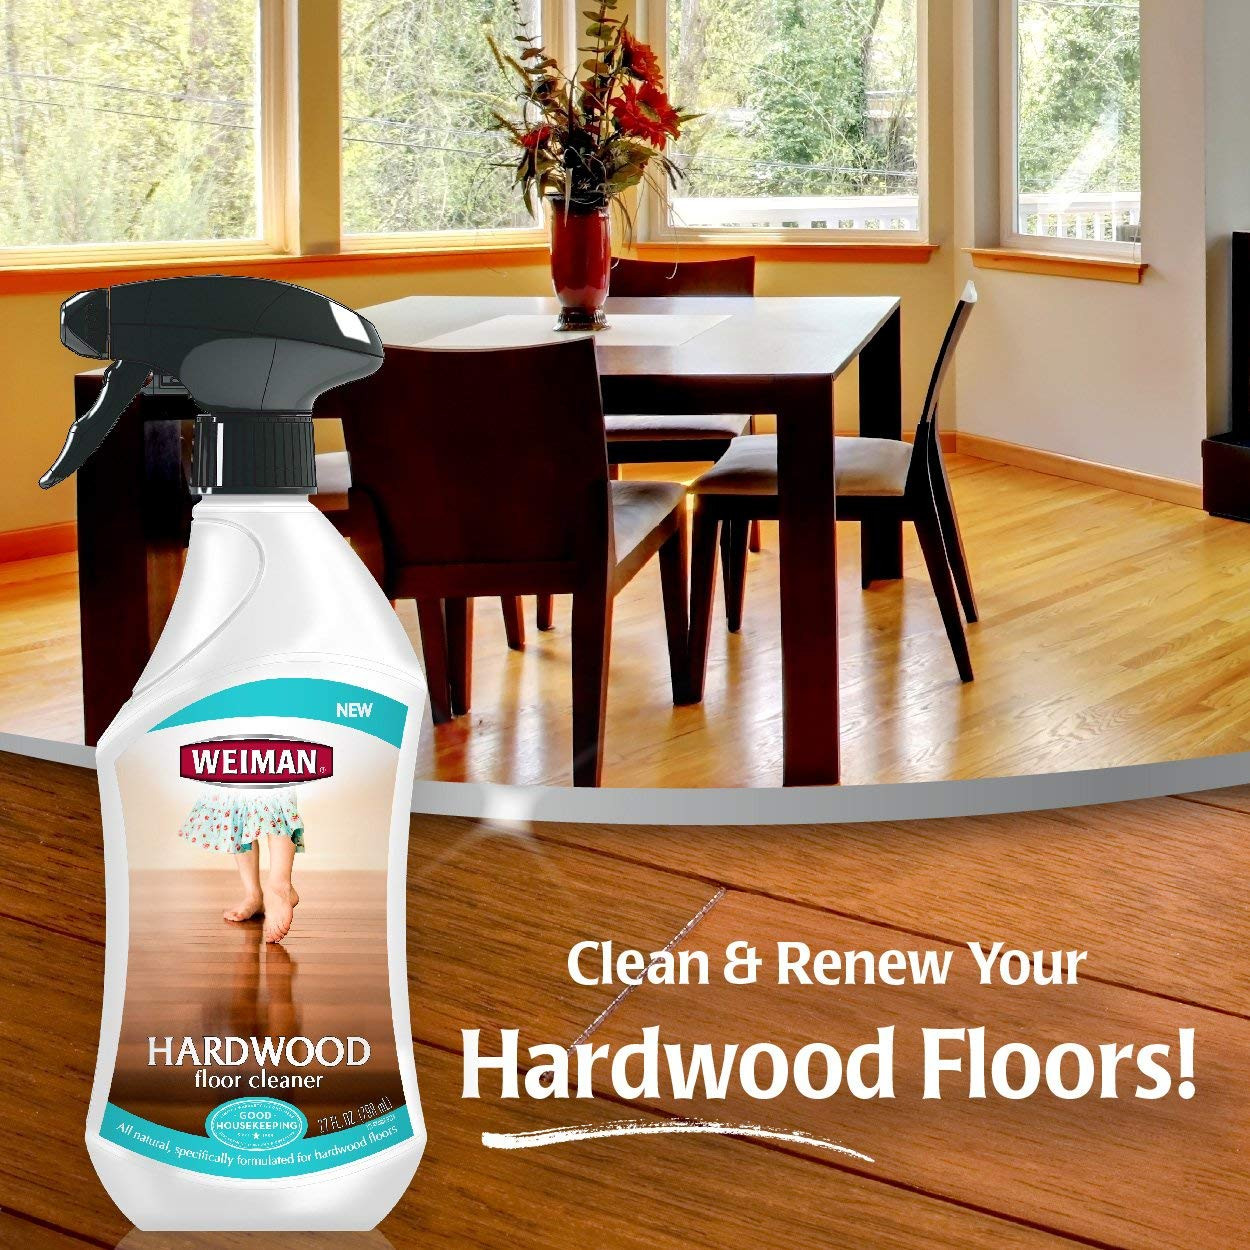 hardwood floor cleaner that fills in scratches of amazon com weiman hardwood floor cleaner surface safe no harsh with regard to amazon com weiman hardwood floor cleaner surface safe no harsh scent safe for use around kids and pets residue free 27 oz trigger home kitchen